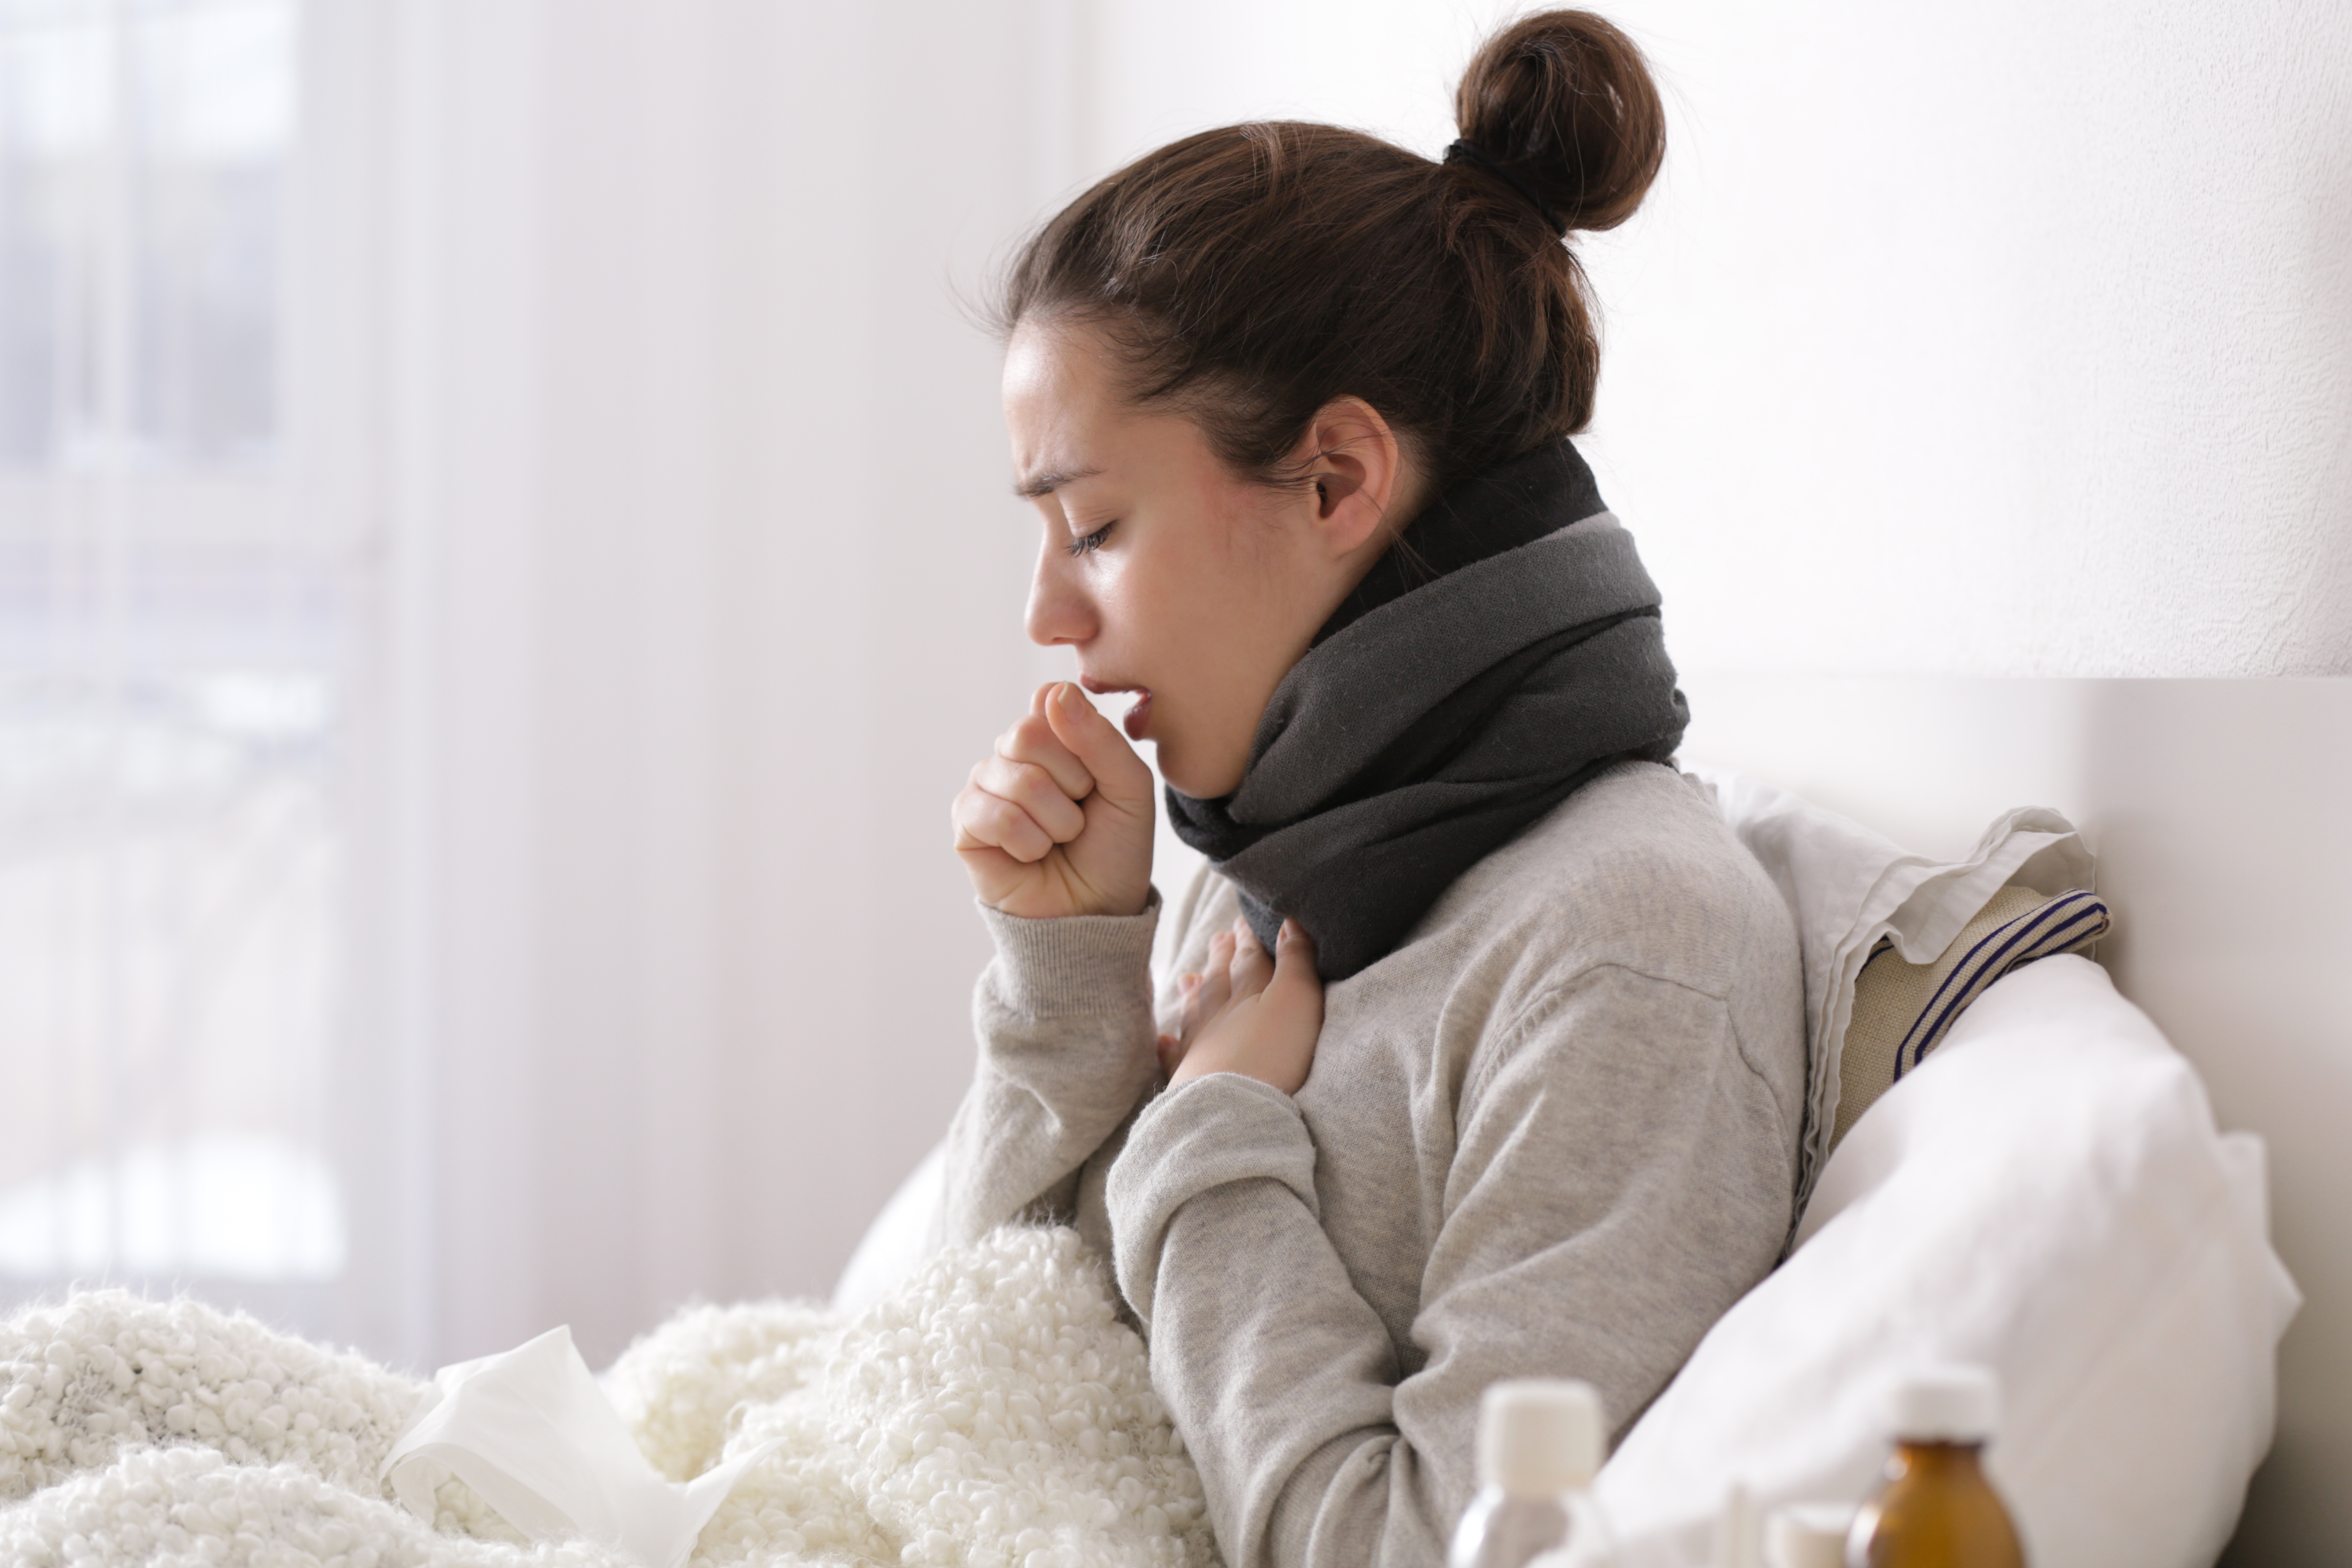 When should you worry about a cough?